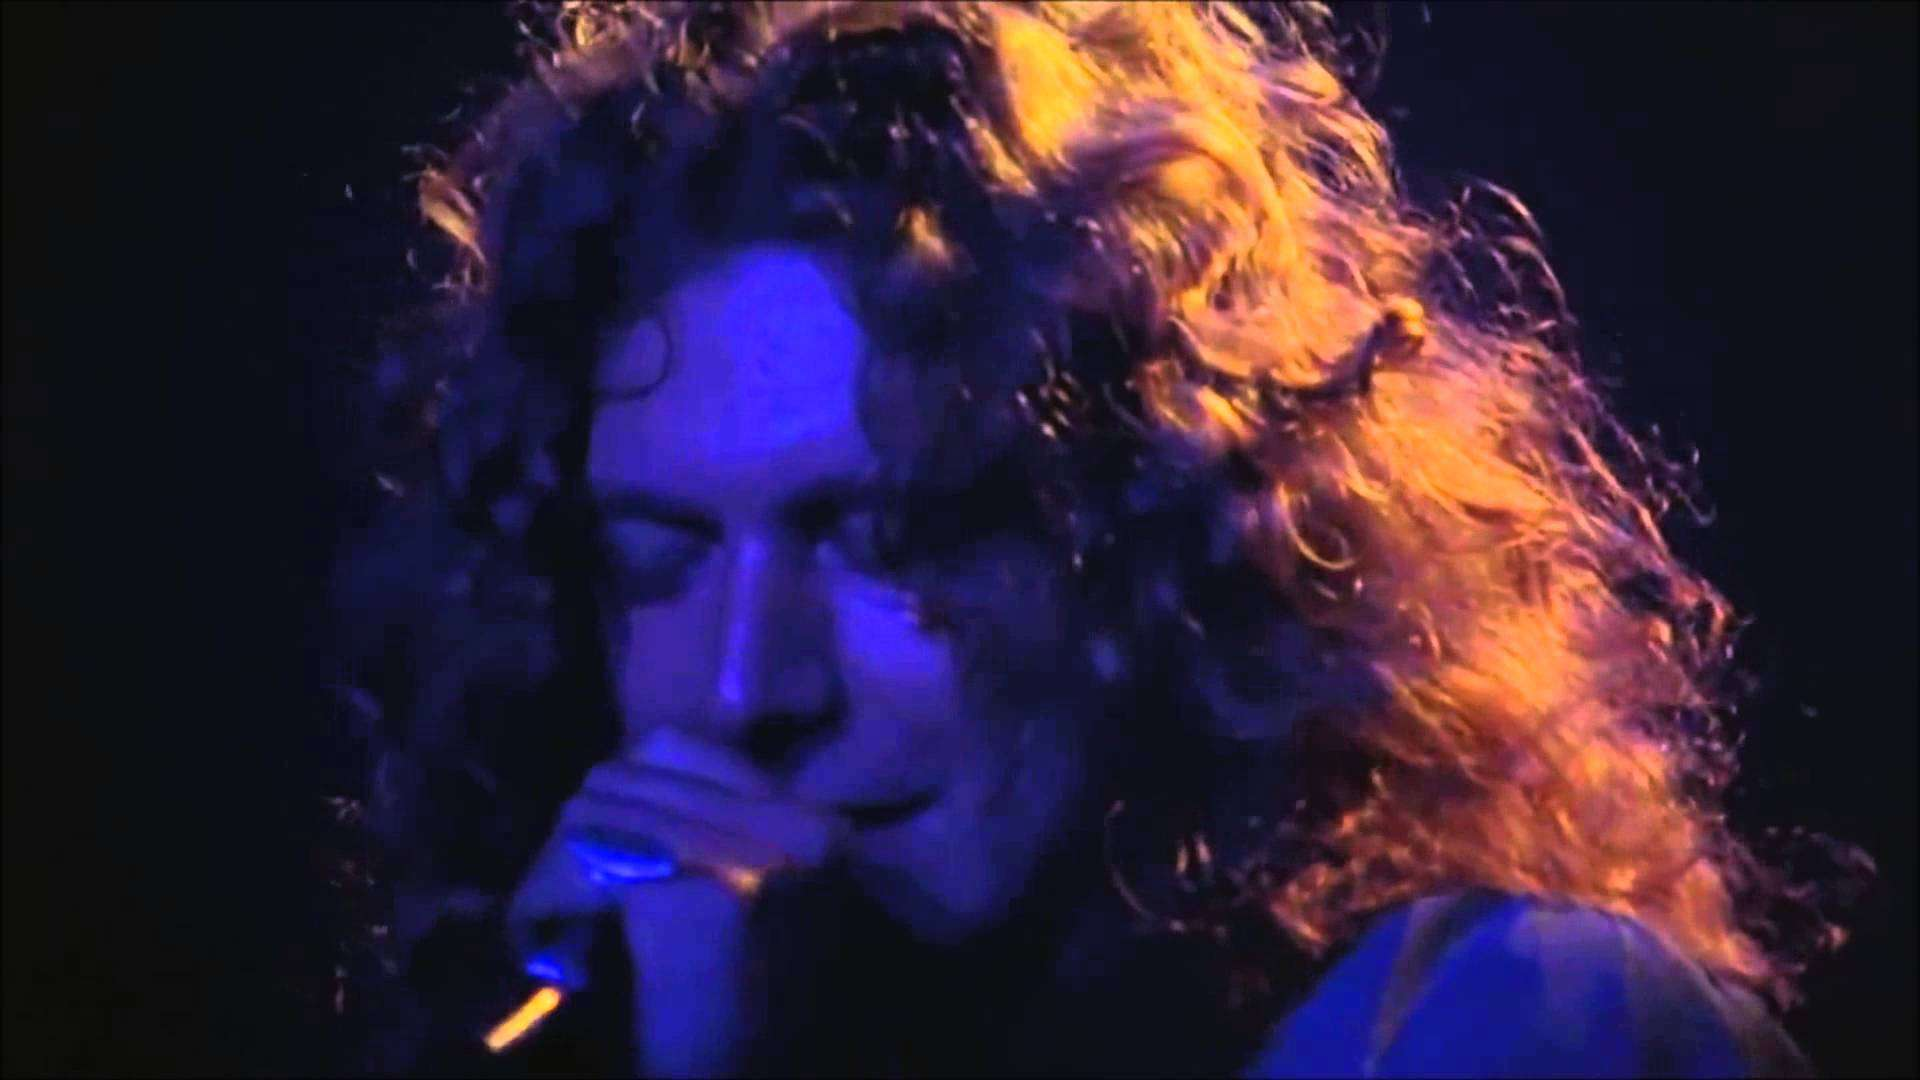 Led Zeppelin - Stairway to Heaven LIVE (Lyrics) HD+ - YouTube